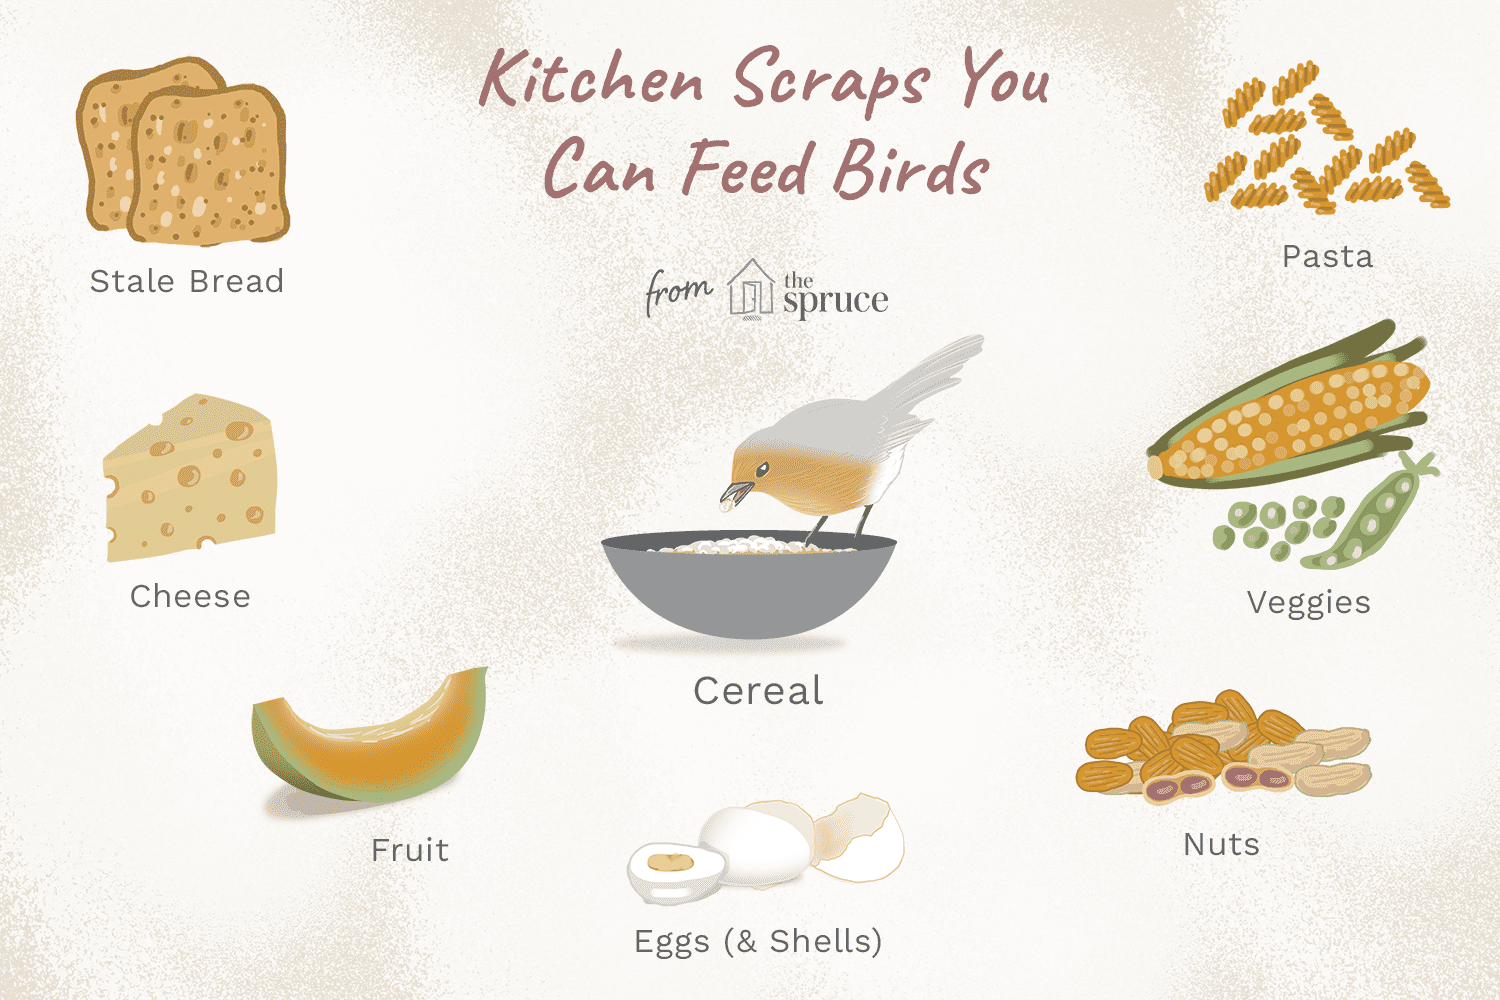 What Kitchen Ss Can Birds Eat